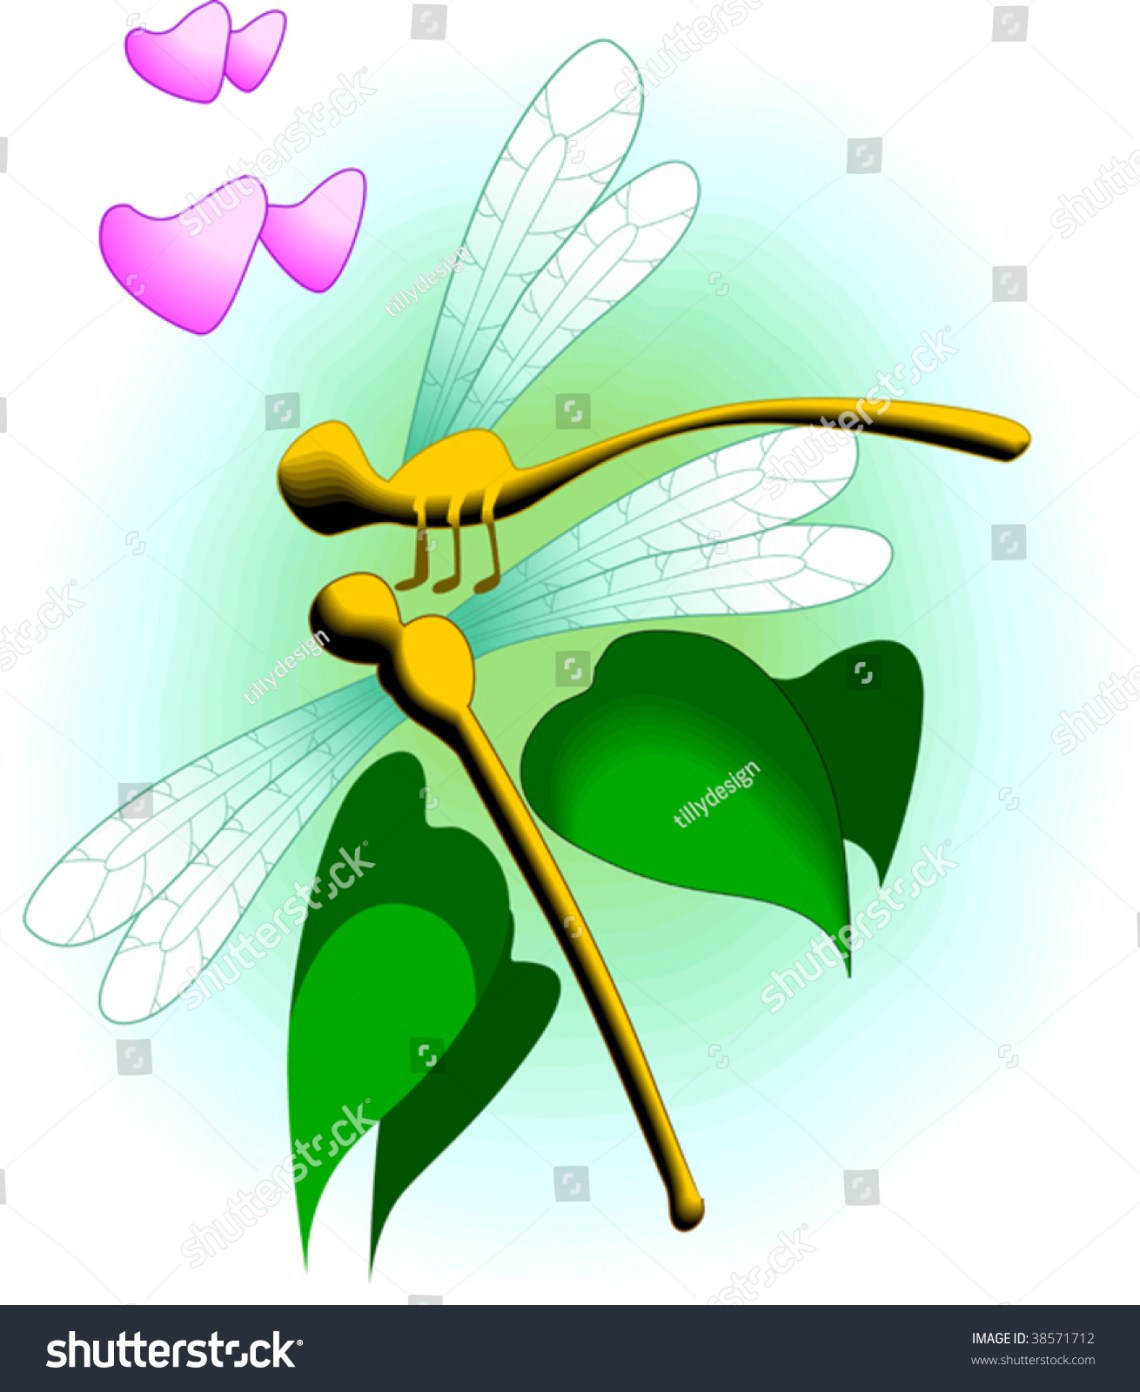 Download Illustration Of Two Dragonfly With Love Symbols - 38571712 ...